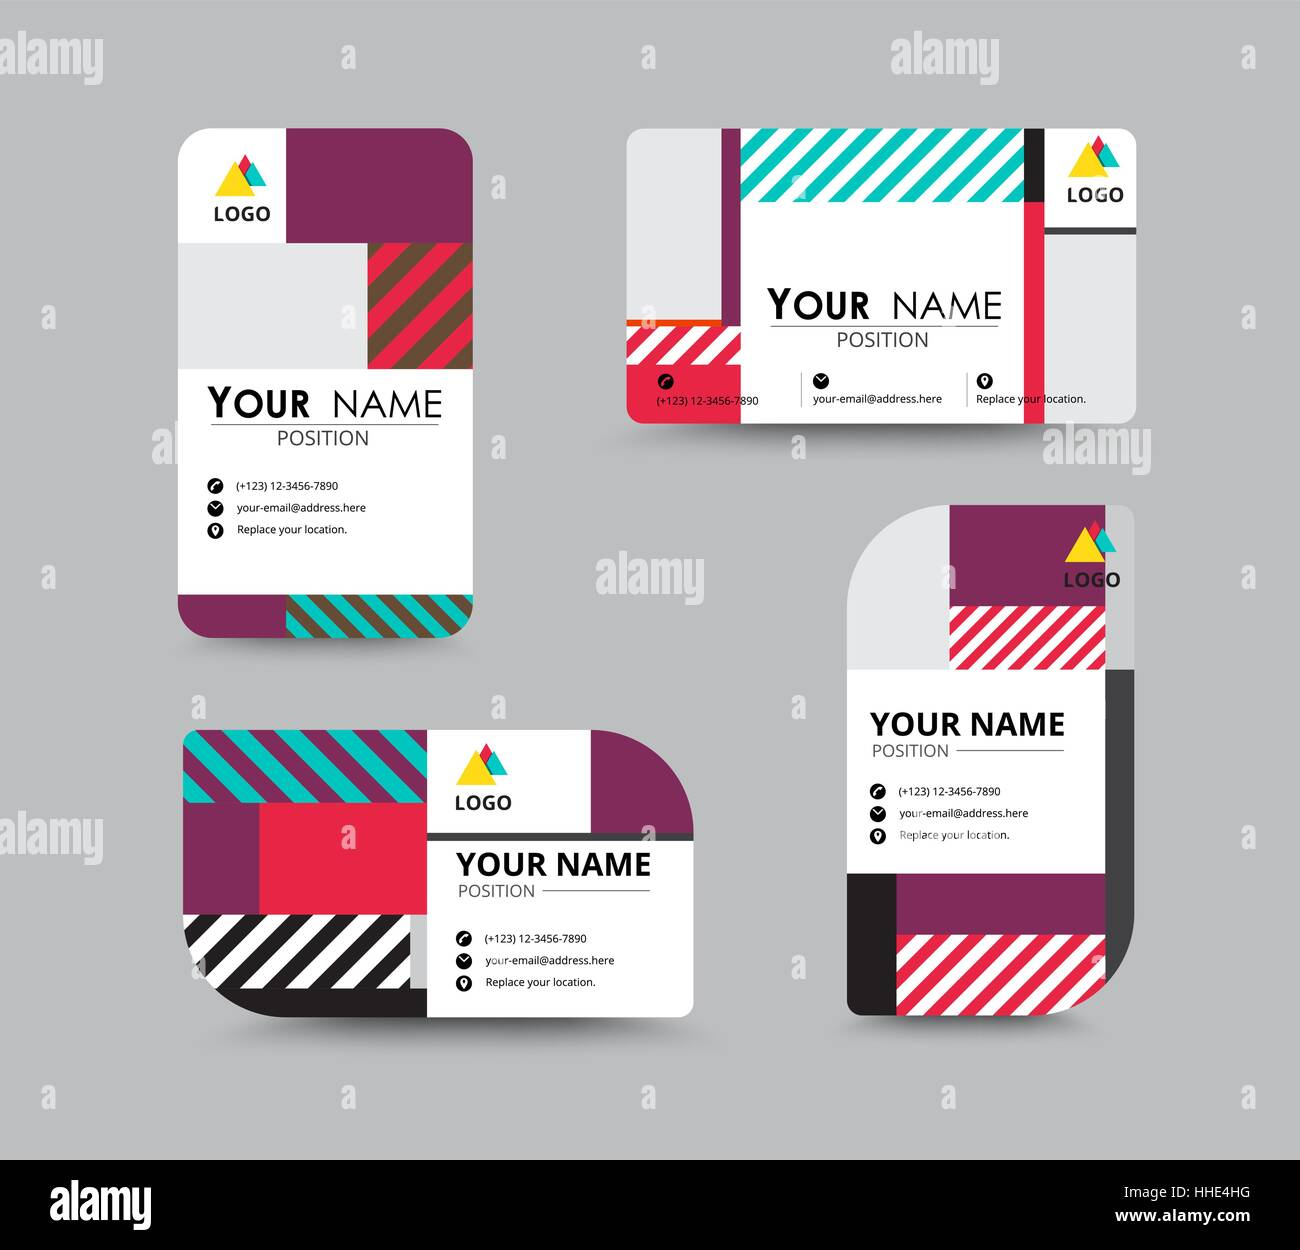 Modern business card and name card design contempolary design with modern business card and name card design contempolary design with sample content vector illustration reheart Gallery